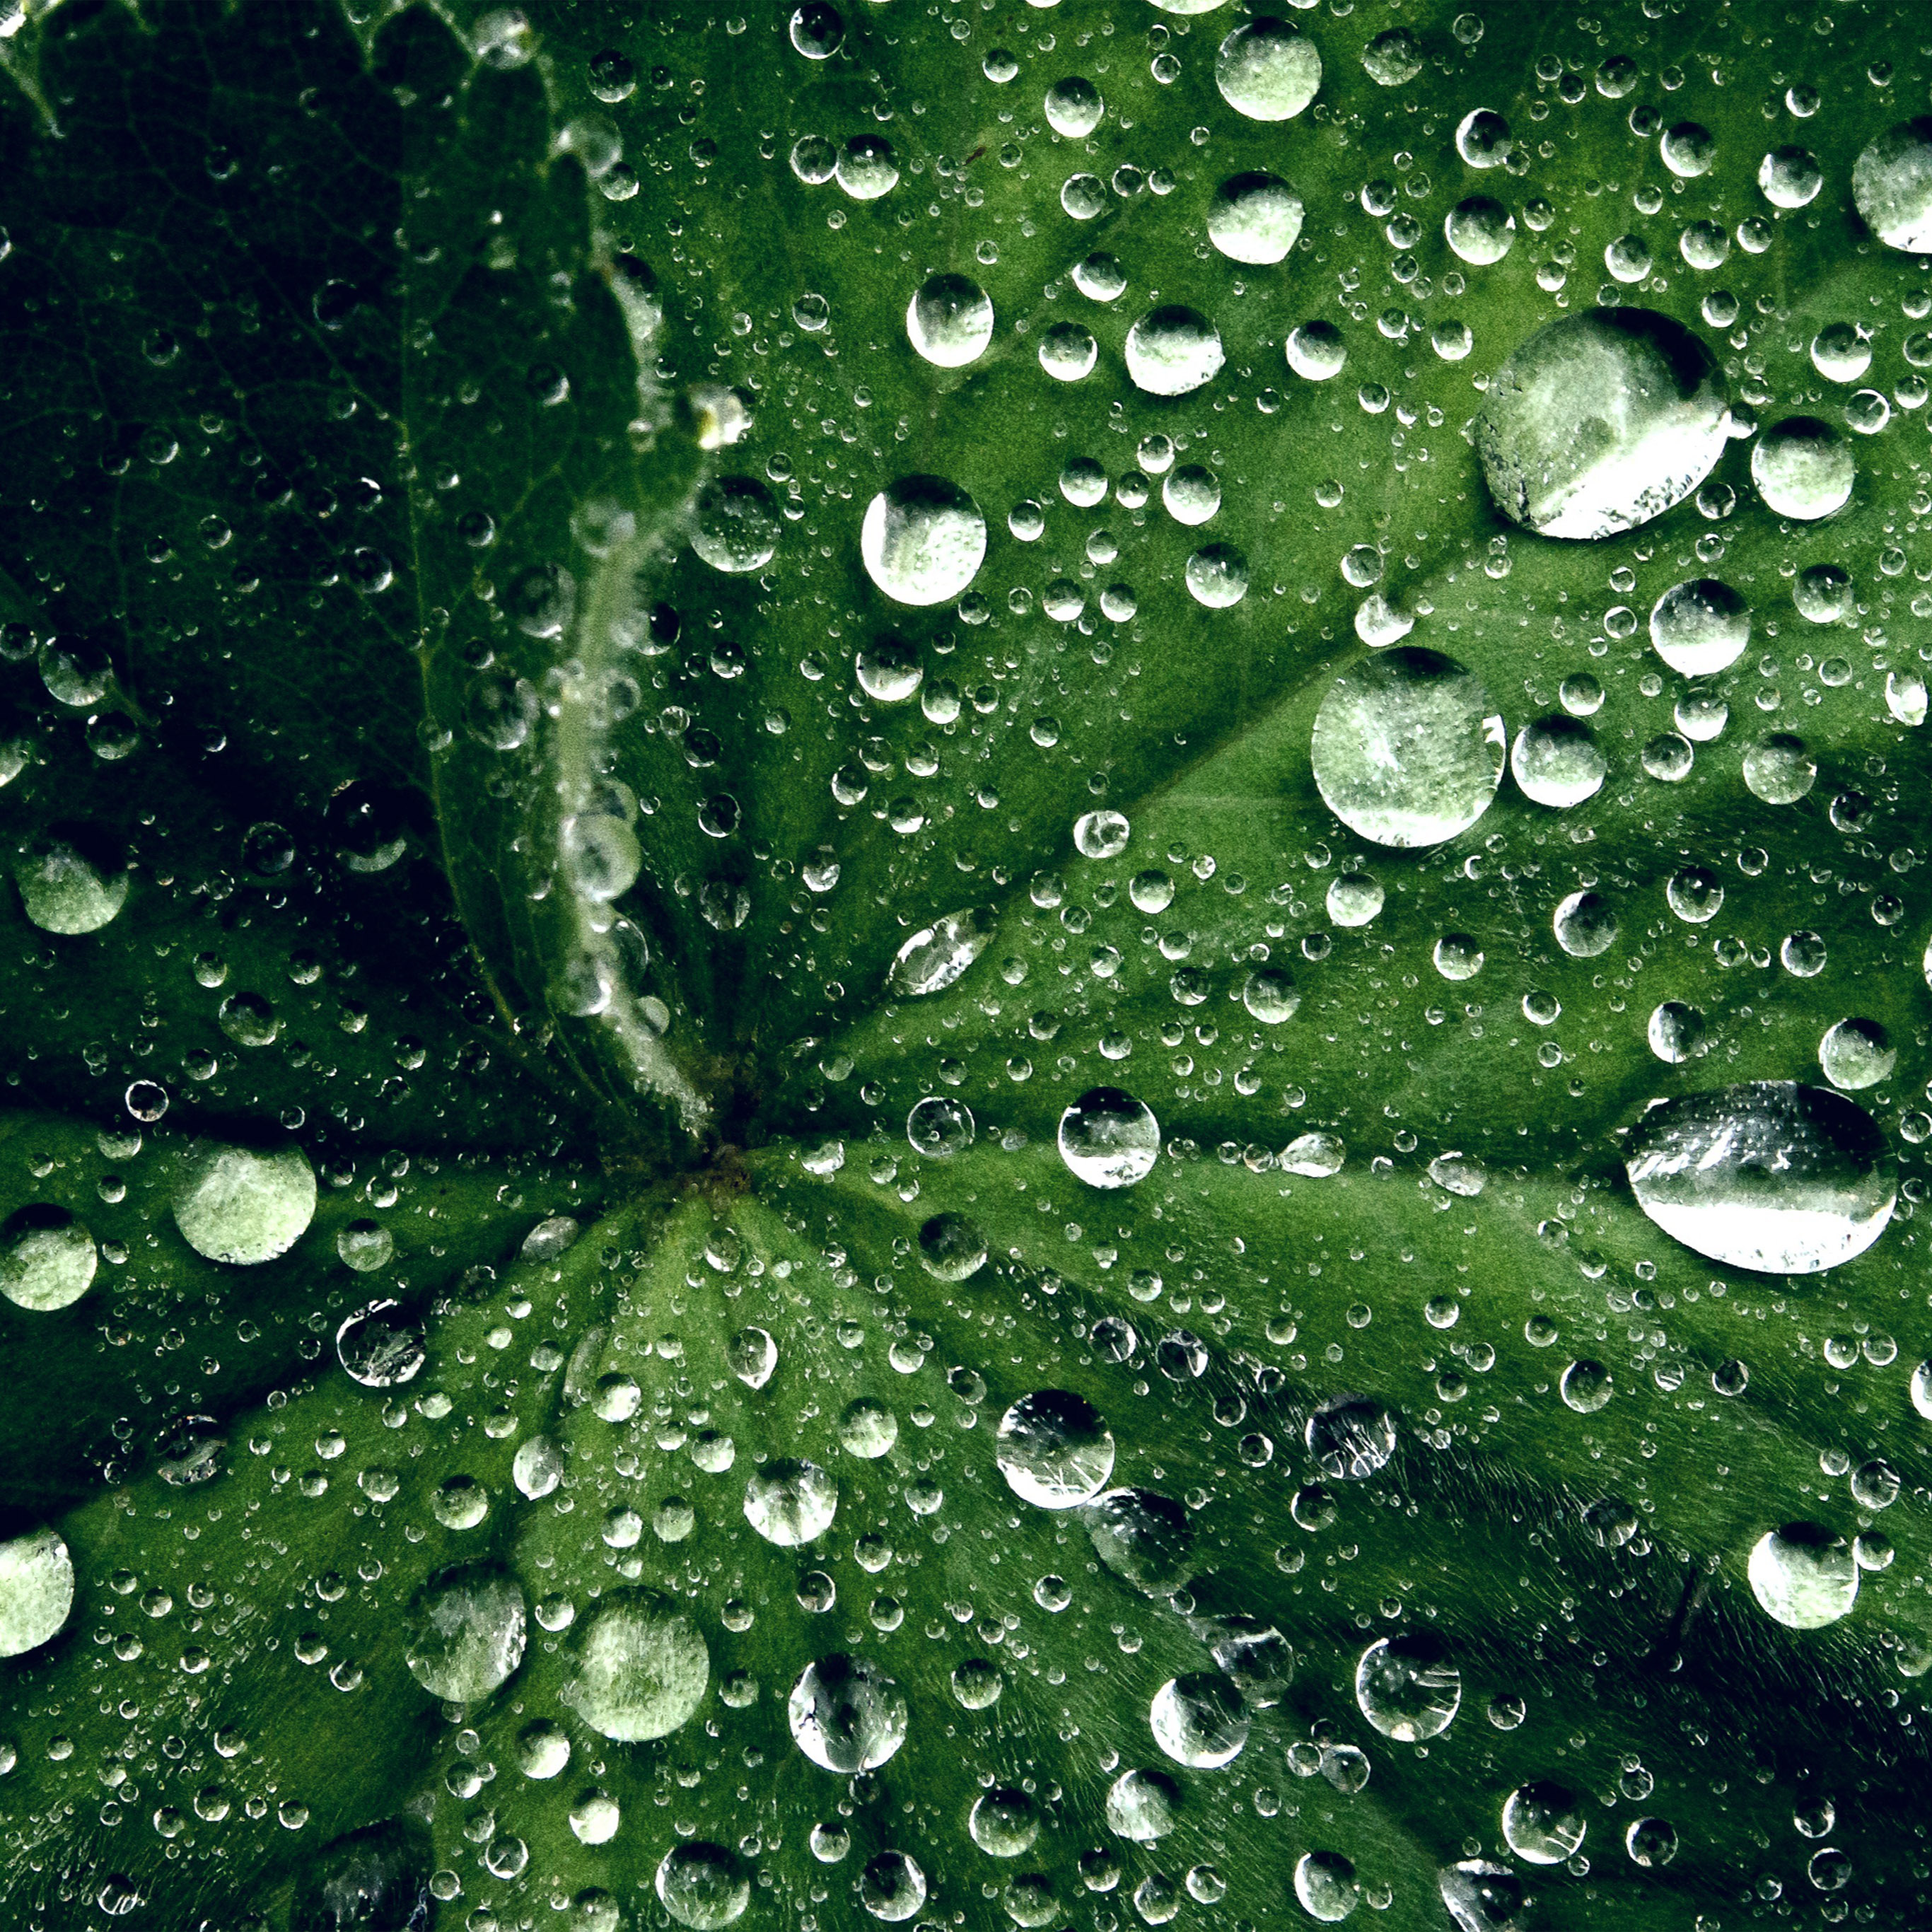 My46 Water Drop On Leaf Summer Green Live Wallpaper